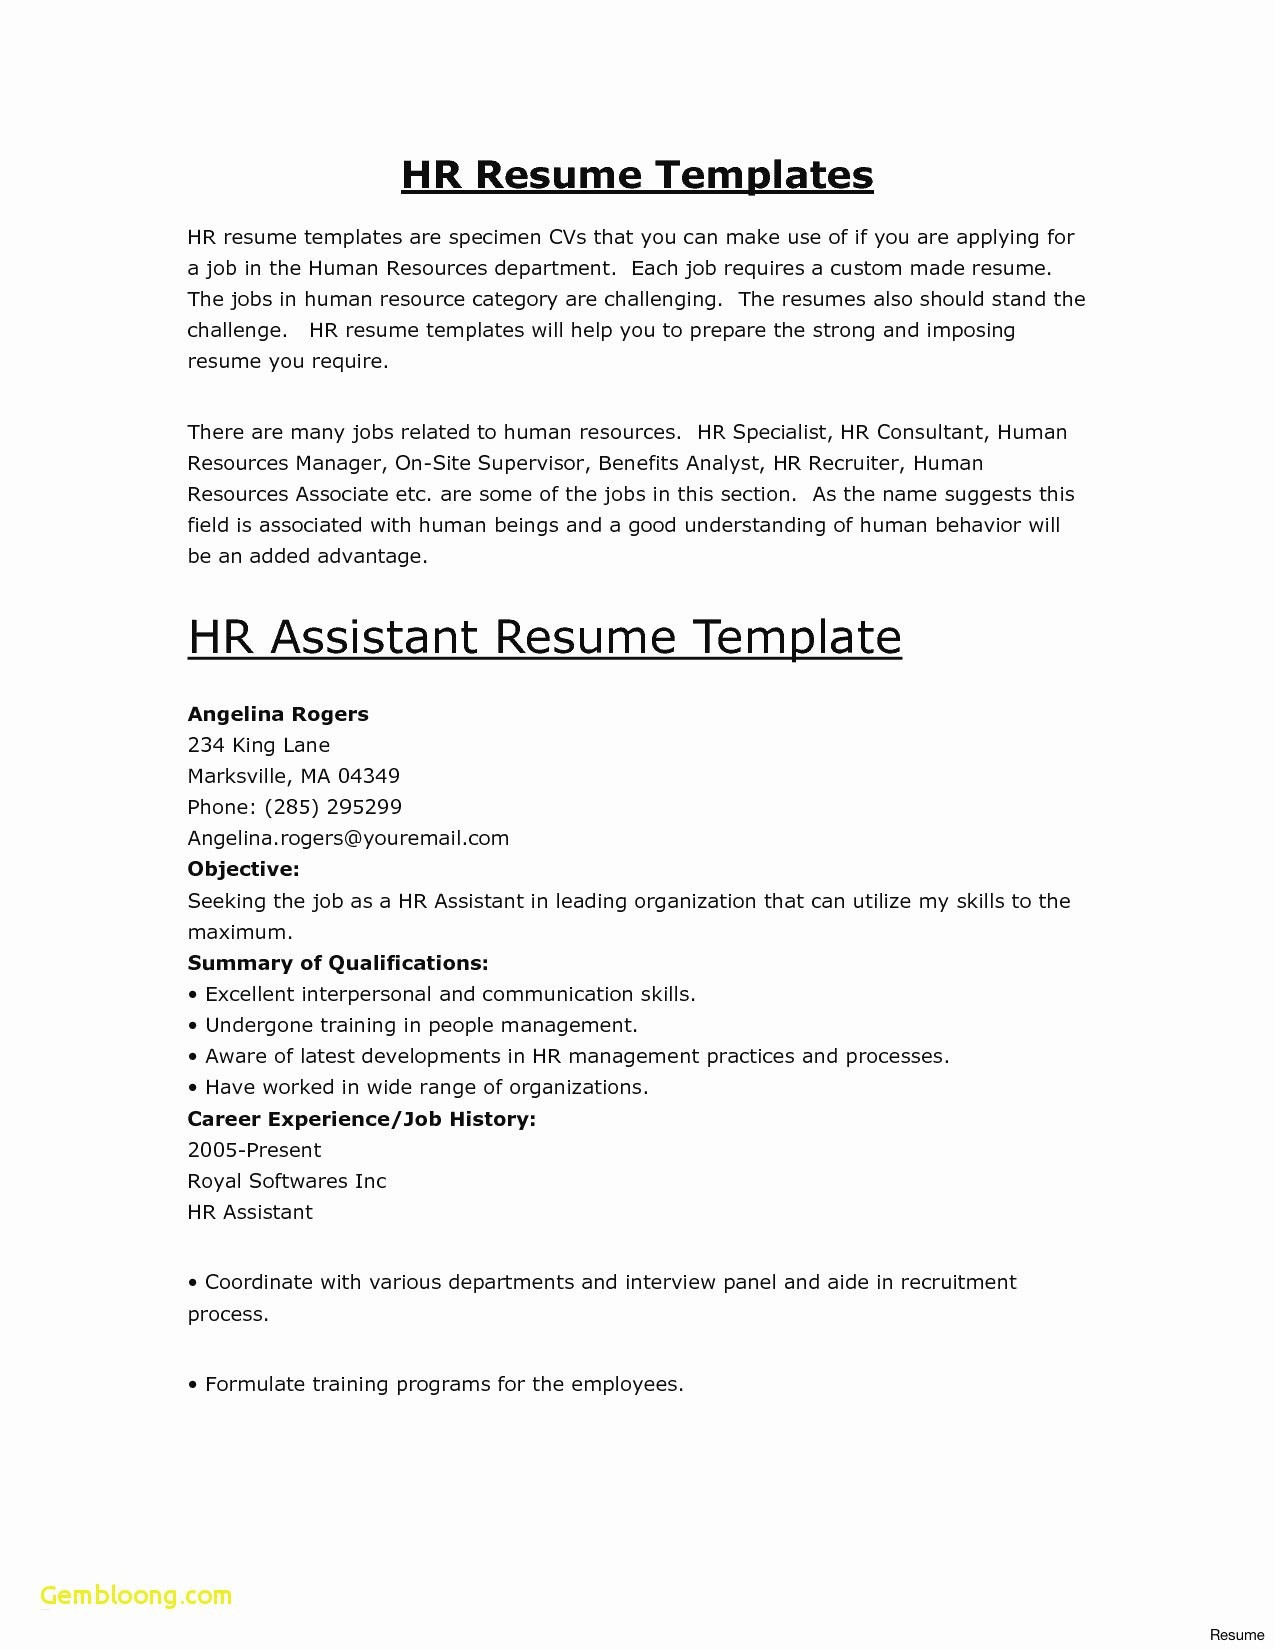 Resume Template for Supervisor Position - Graphic Design Job Description Resume Fresh Best Resumes Ever